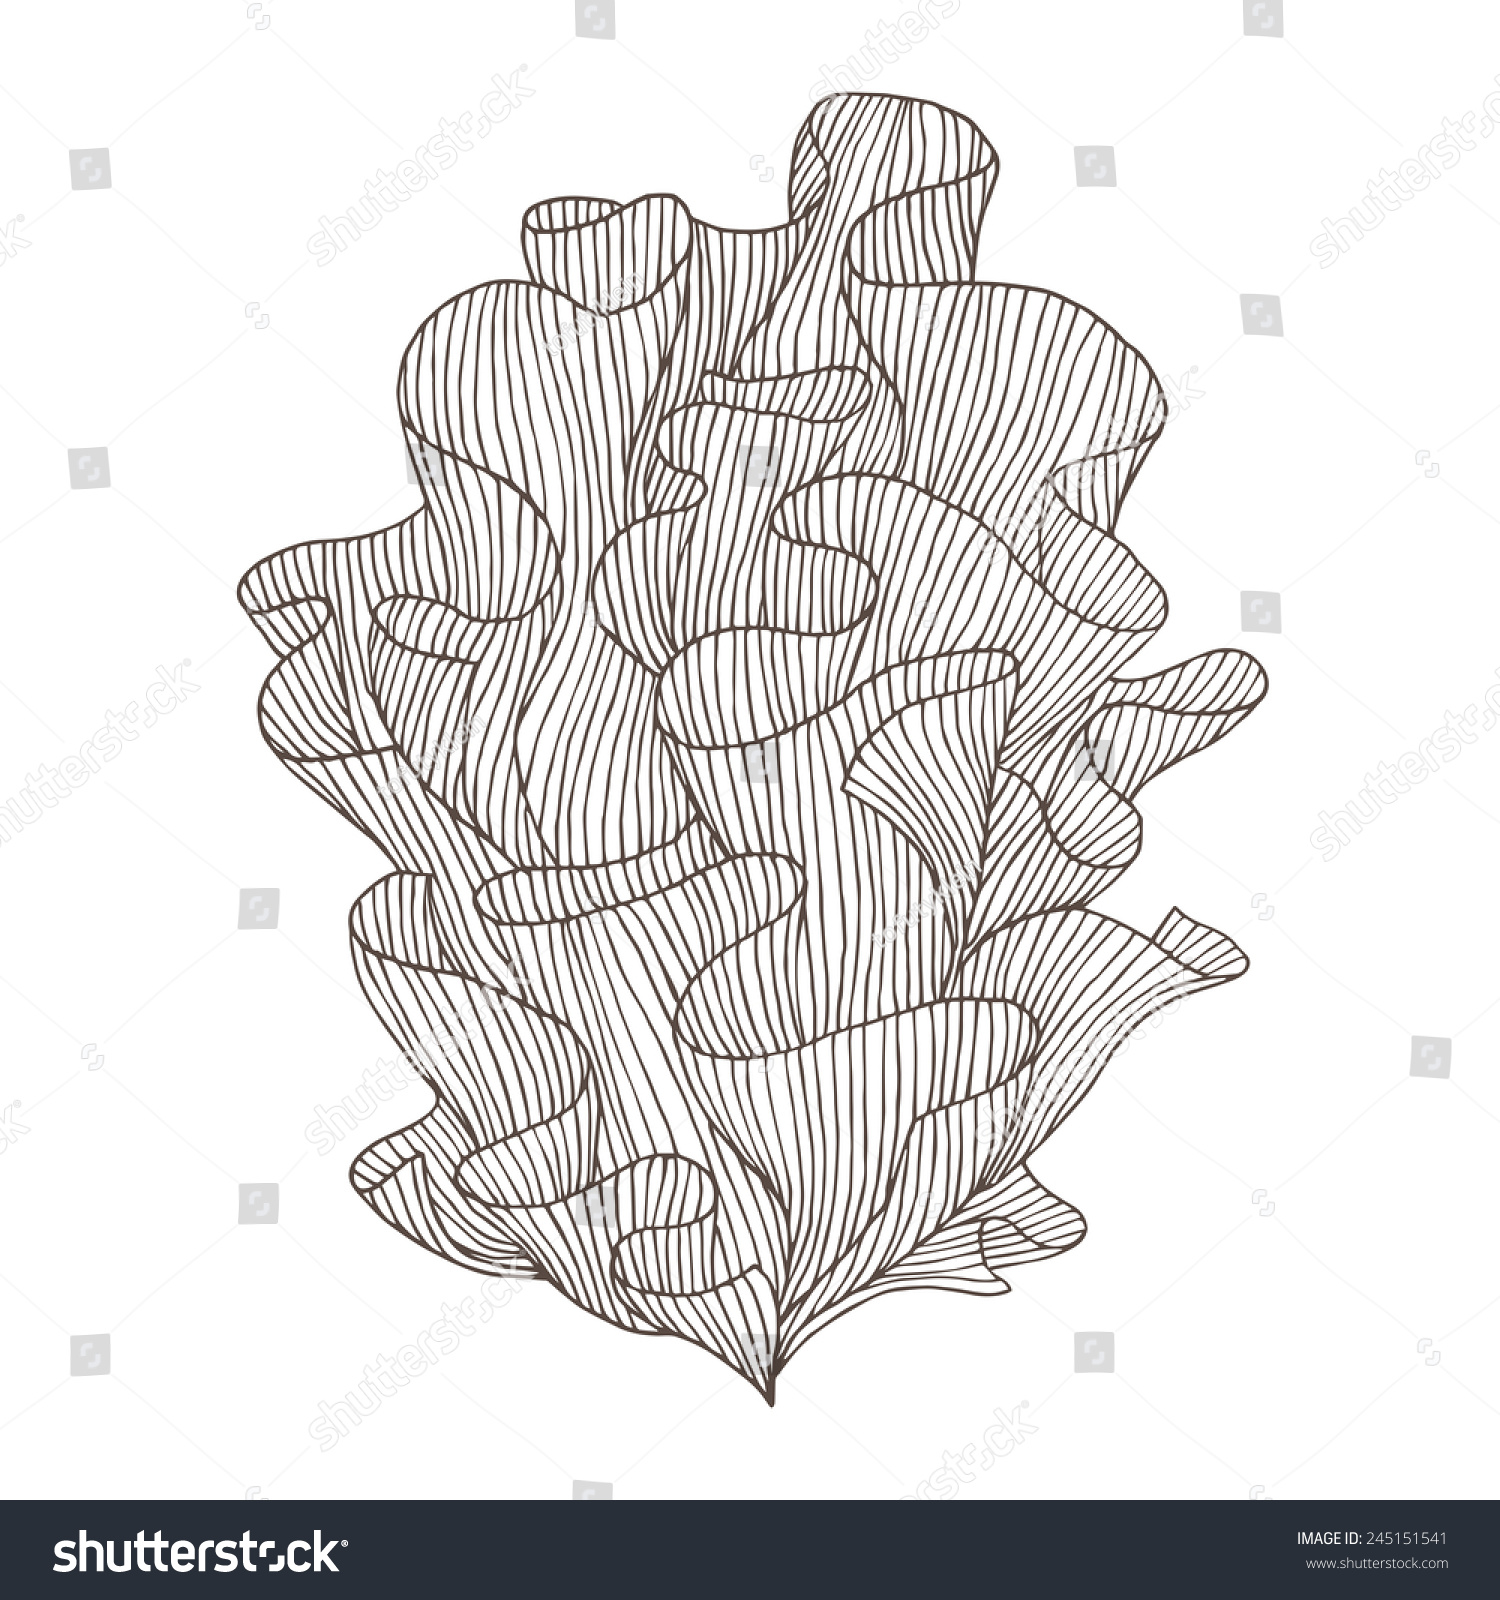 Simple underwater coloring page